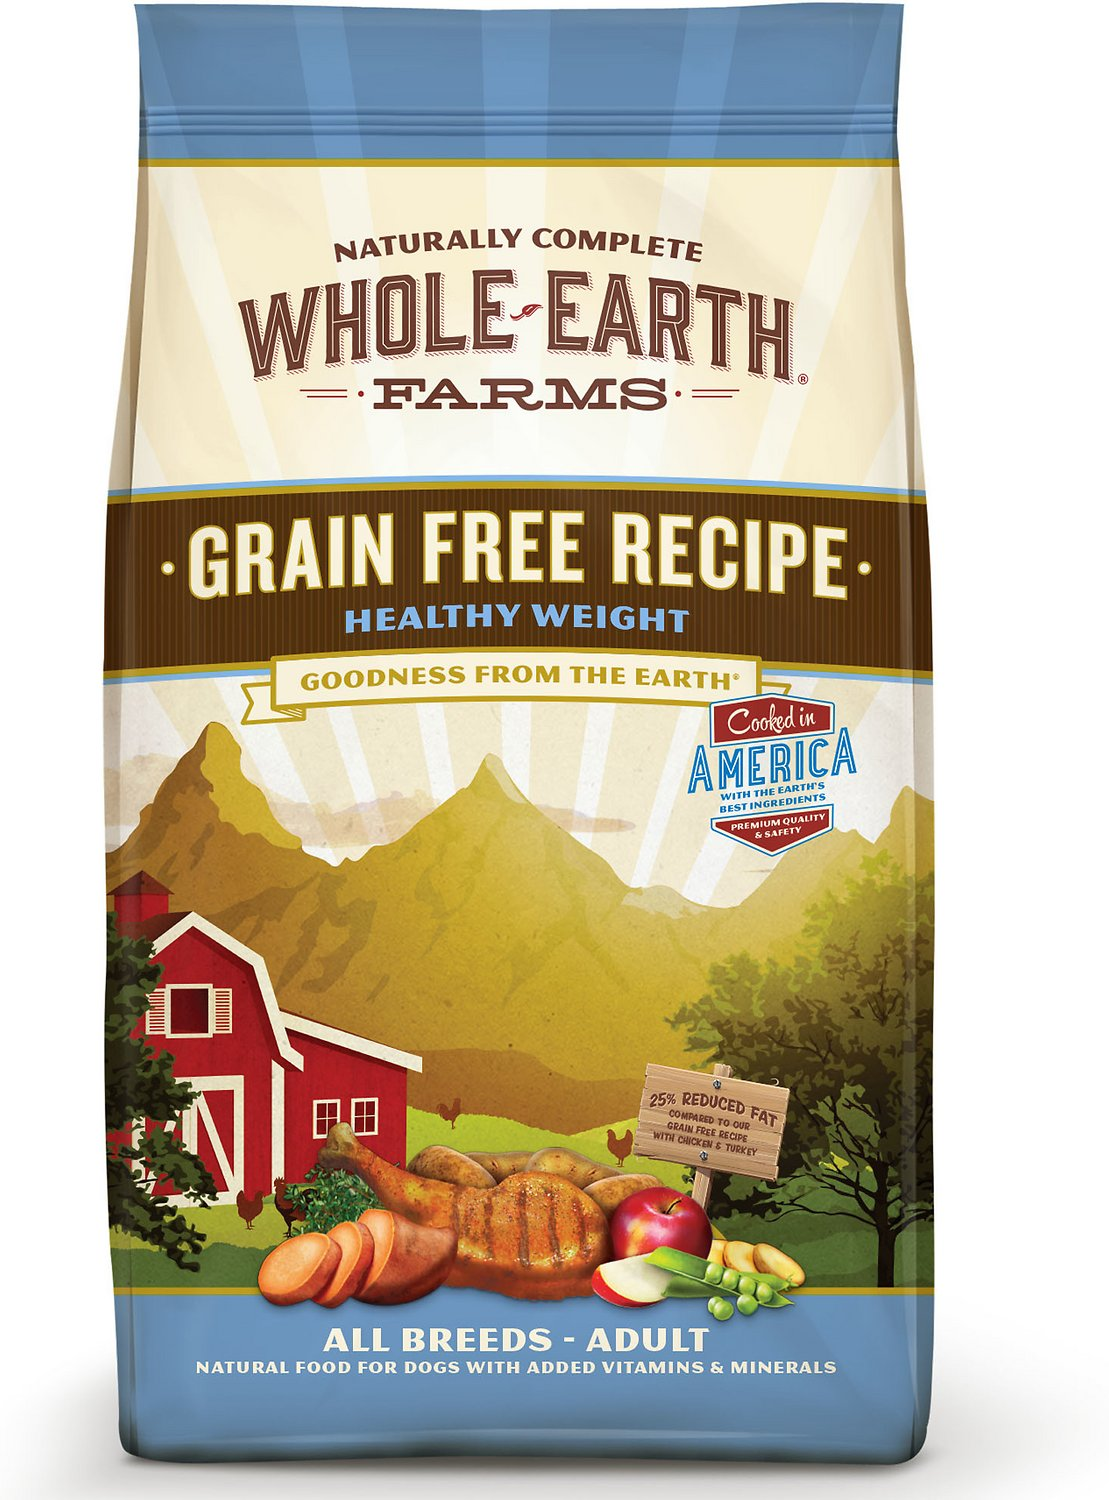 Whole earth farms grain free healthy weight dry dog food 25 lb bag whole earth farms grain free healthy weight dry dog food 25 lb bag chewy forumfinder Images